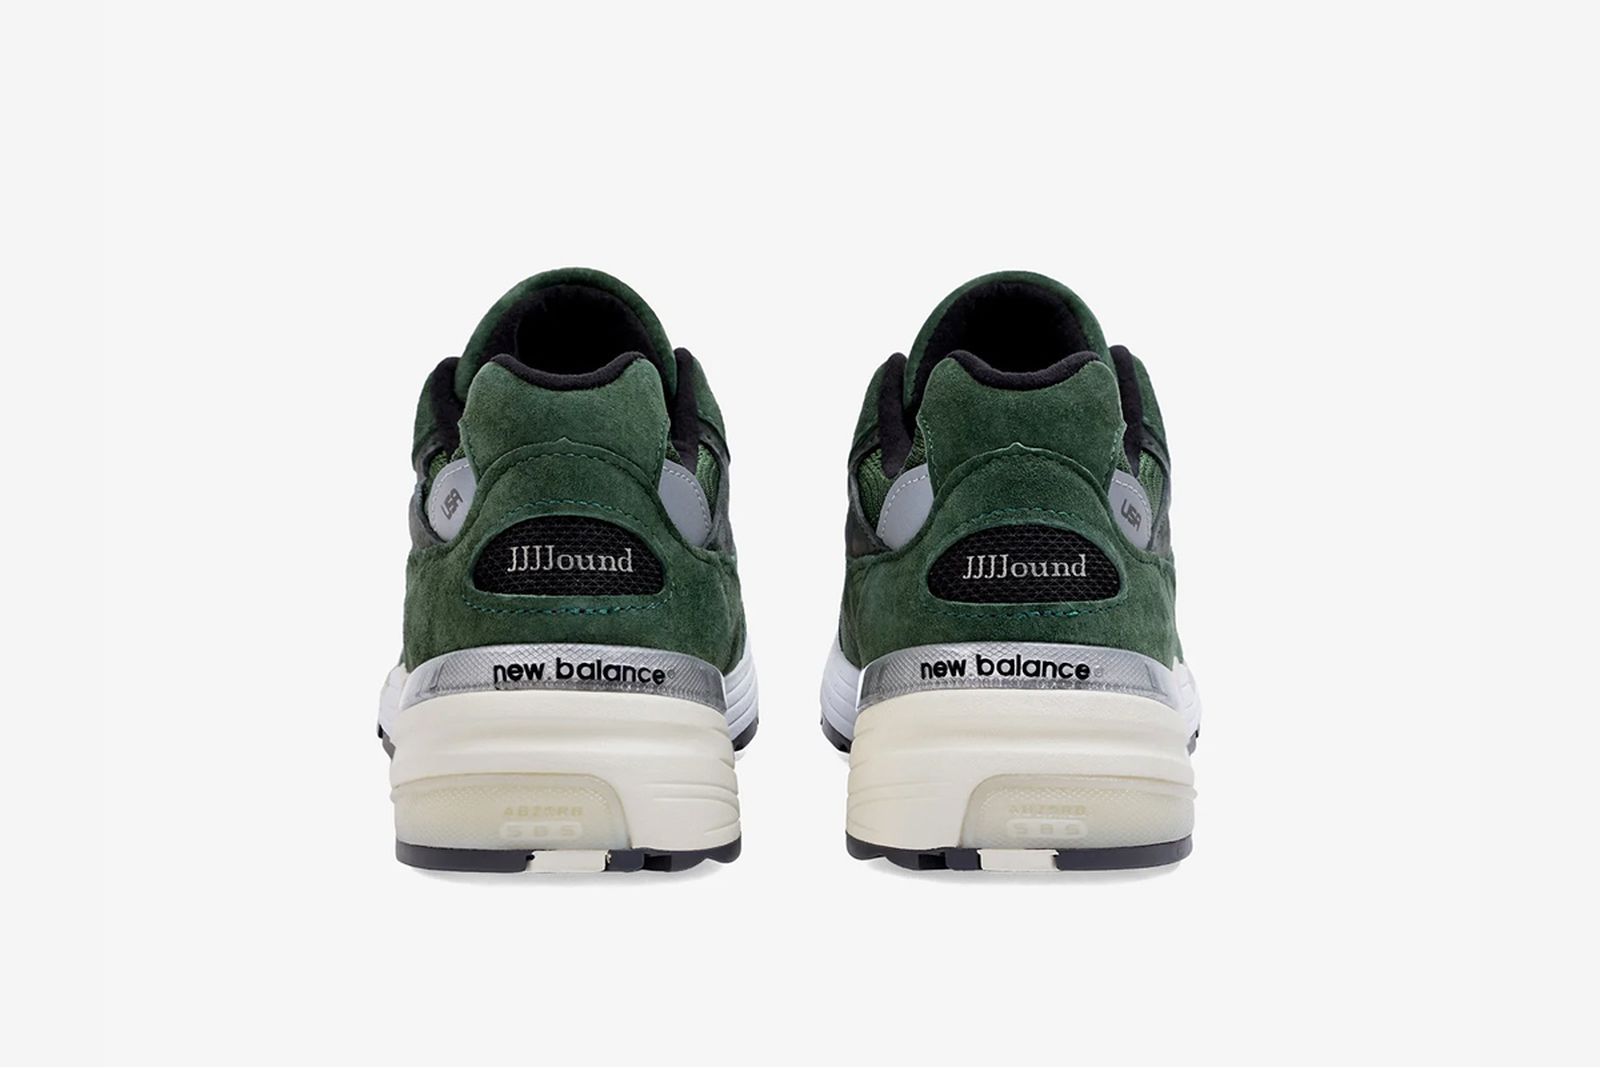 jjjjound-new-balance-992-release-date-price-05